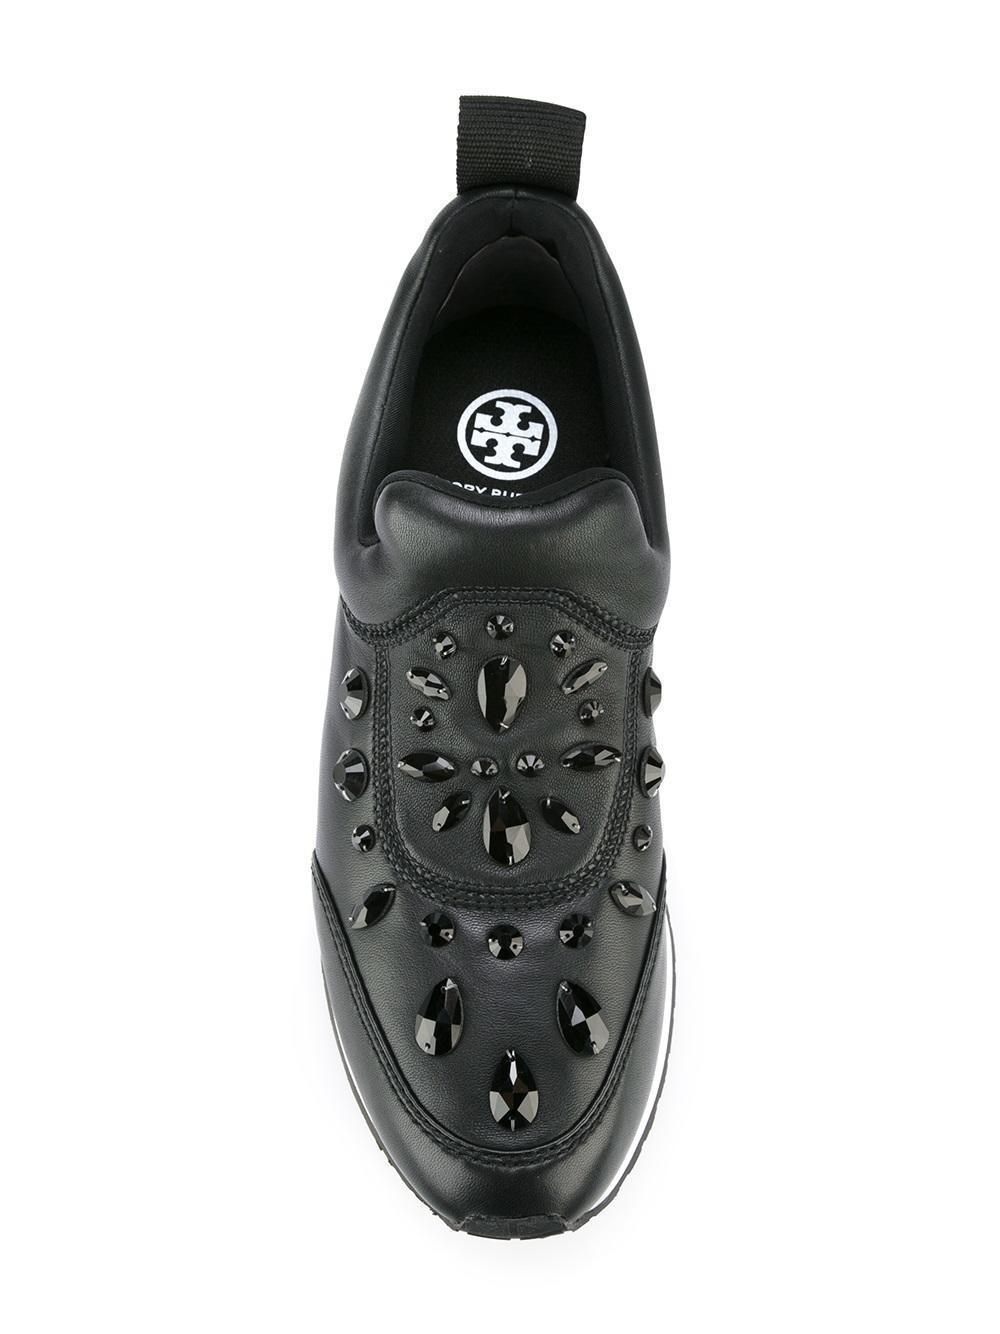 c21381faeddd Tory Burch Laney Crystal-Embellished Black Leather Shoe Flat Sneakers Shoe  6.5